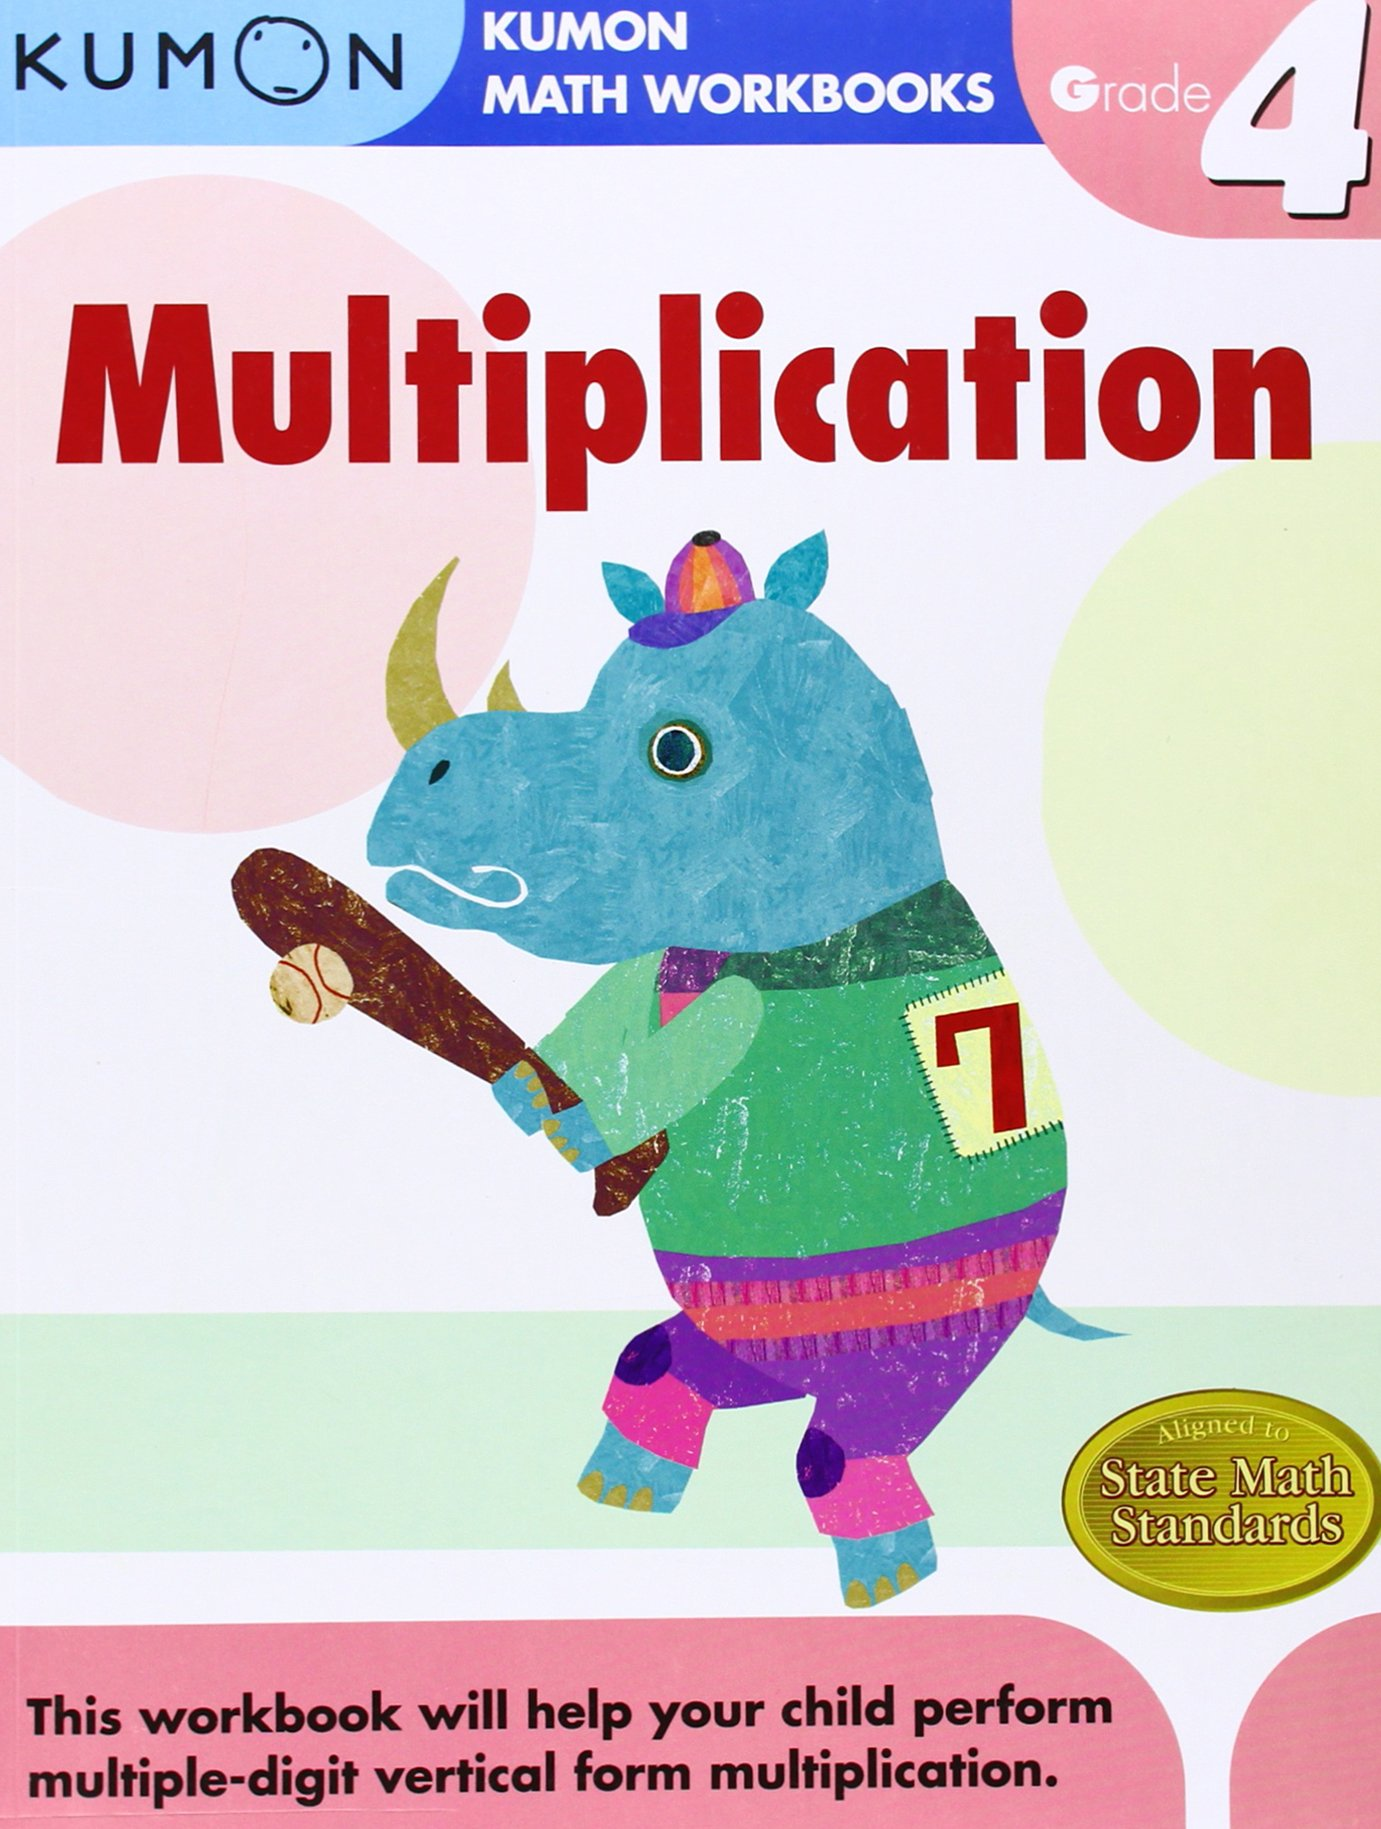 Grade 4 Multiplication Kumon Math Workbooks Kumon Publishing